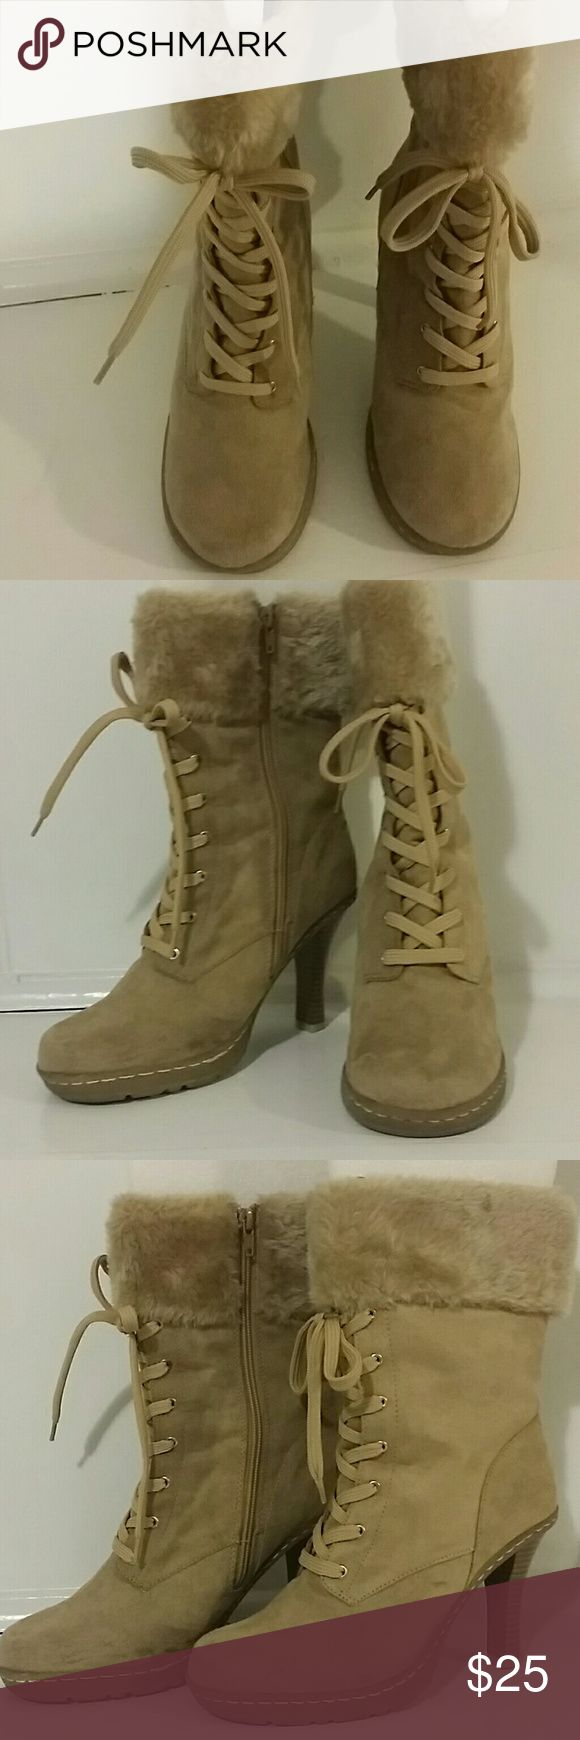 """Boots Mid-calf dress boots for cold weather. Worn once, mild scuff marks as pictured. All man-made materials. 12"""" from sole to top with 4"""" heel. Shoes Lace Up Boots"""